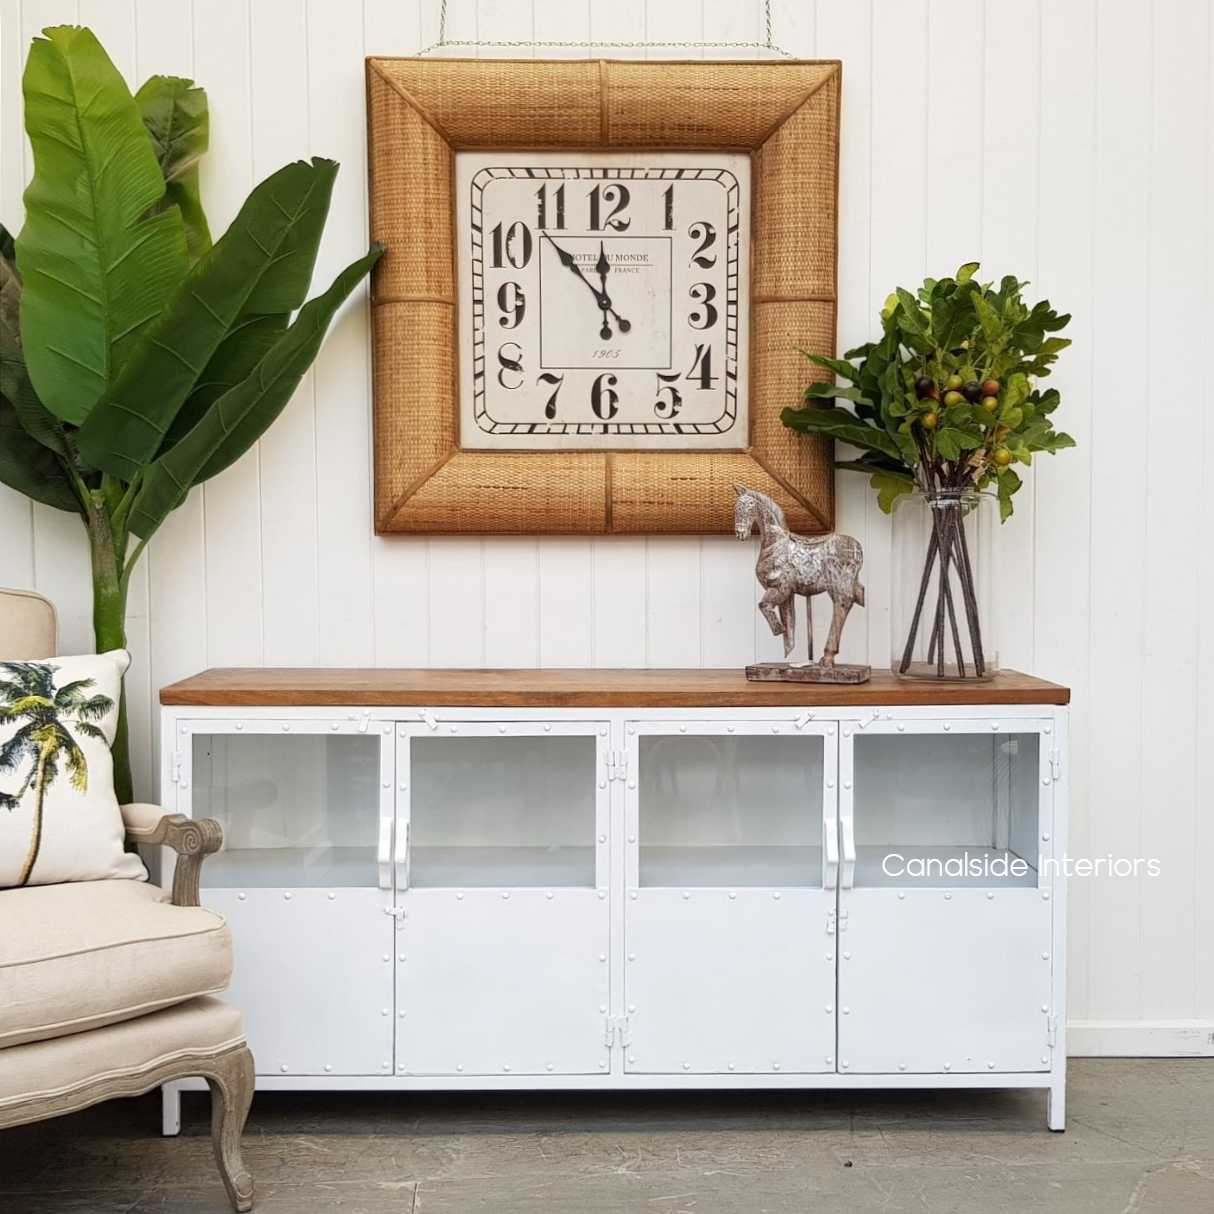 Foundry 4 Door TV Sideboard with Wooden Top White  INDUSTRIAL RUSTIC Style, CAFE FURNITURE, LIVING Room, LIVING TV Media & Storage, CAFE FURNITURE Storage, TABLES Sideboards & Buffets, STORAGE, STORAGE Sideboards & Buffets